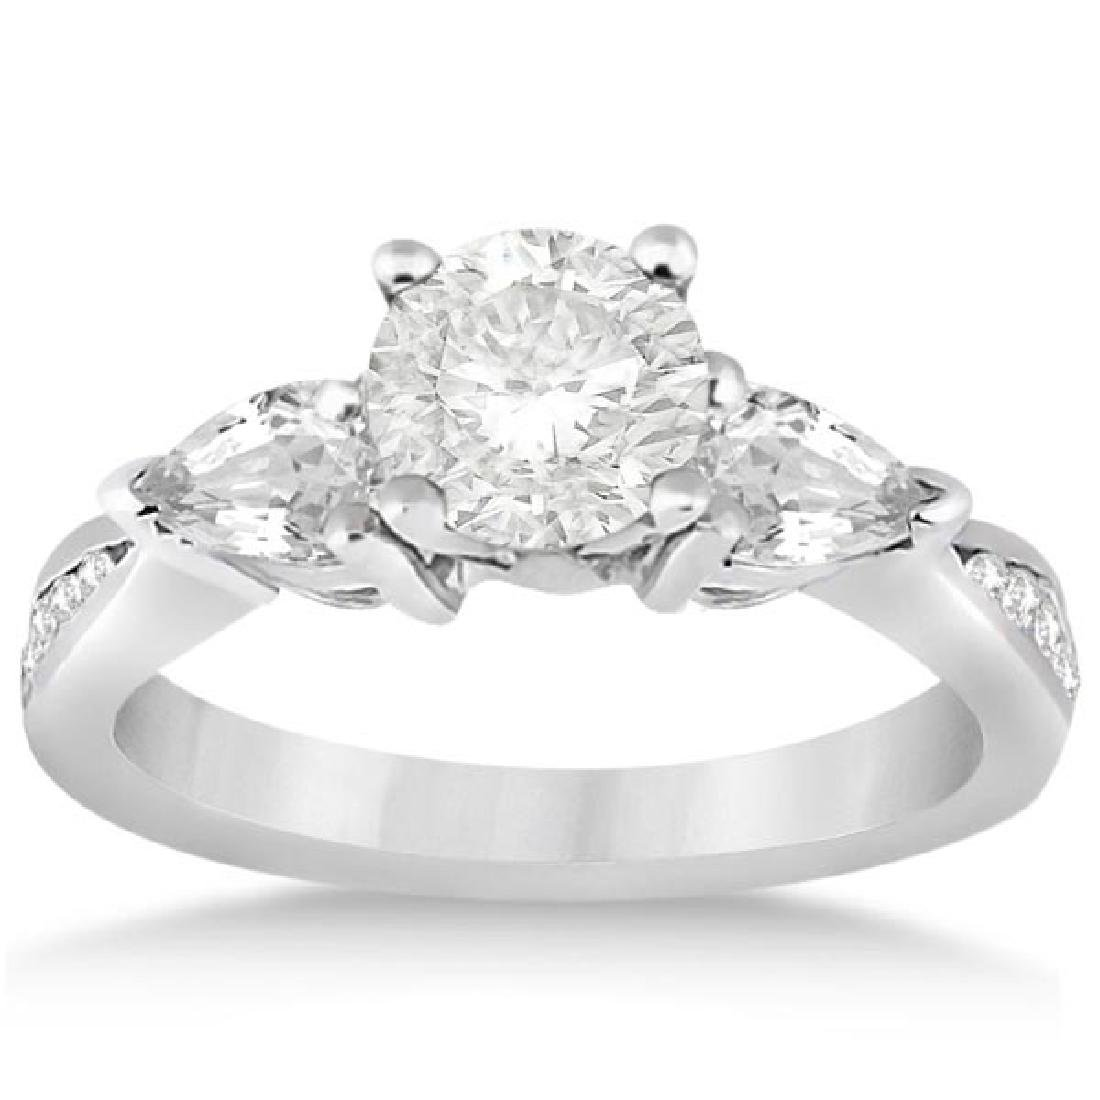 Three Stone Pear Cut Diamond Engagement Ring 14k White